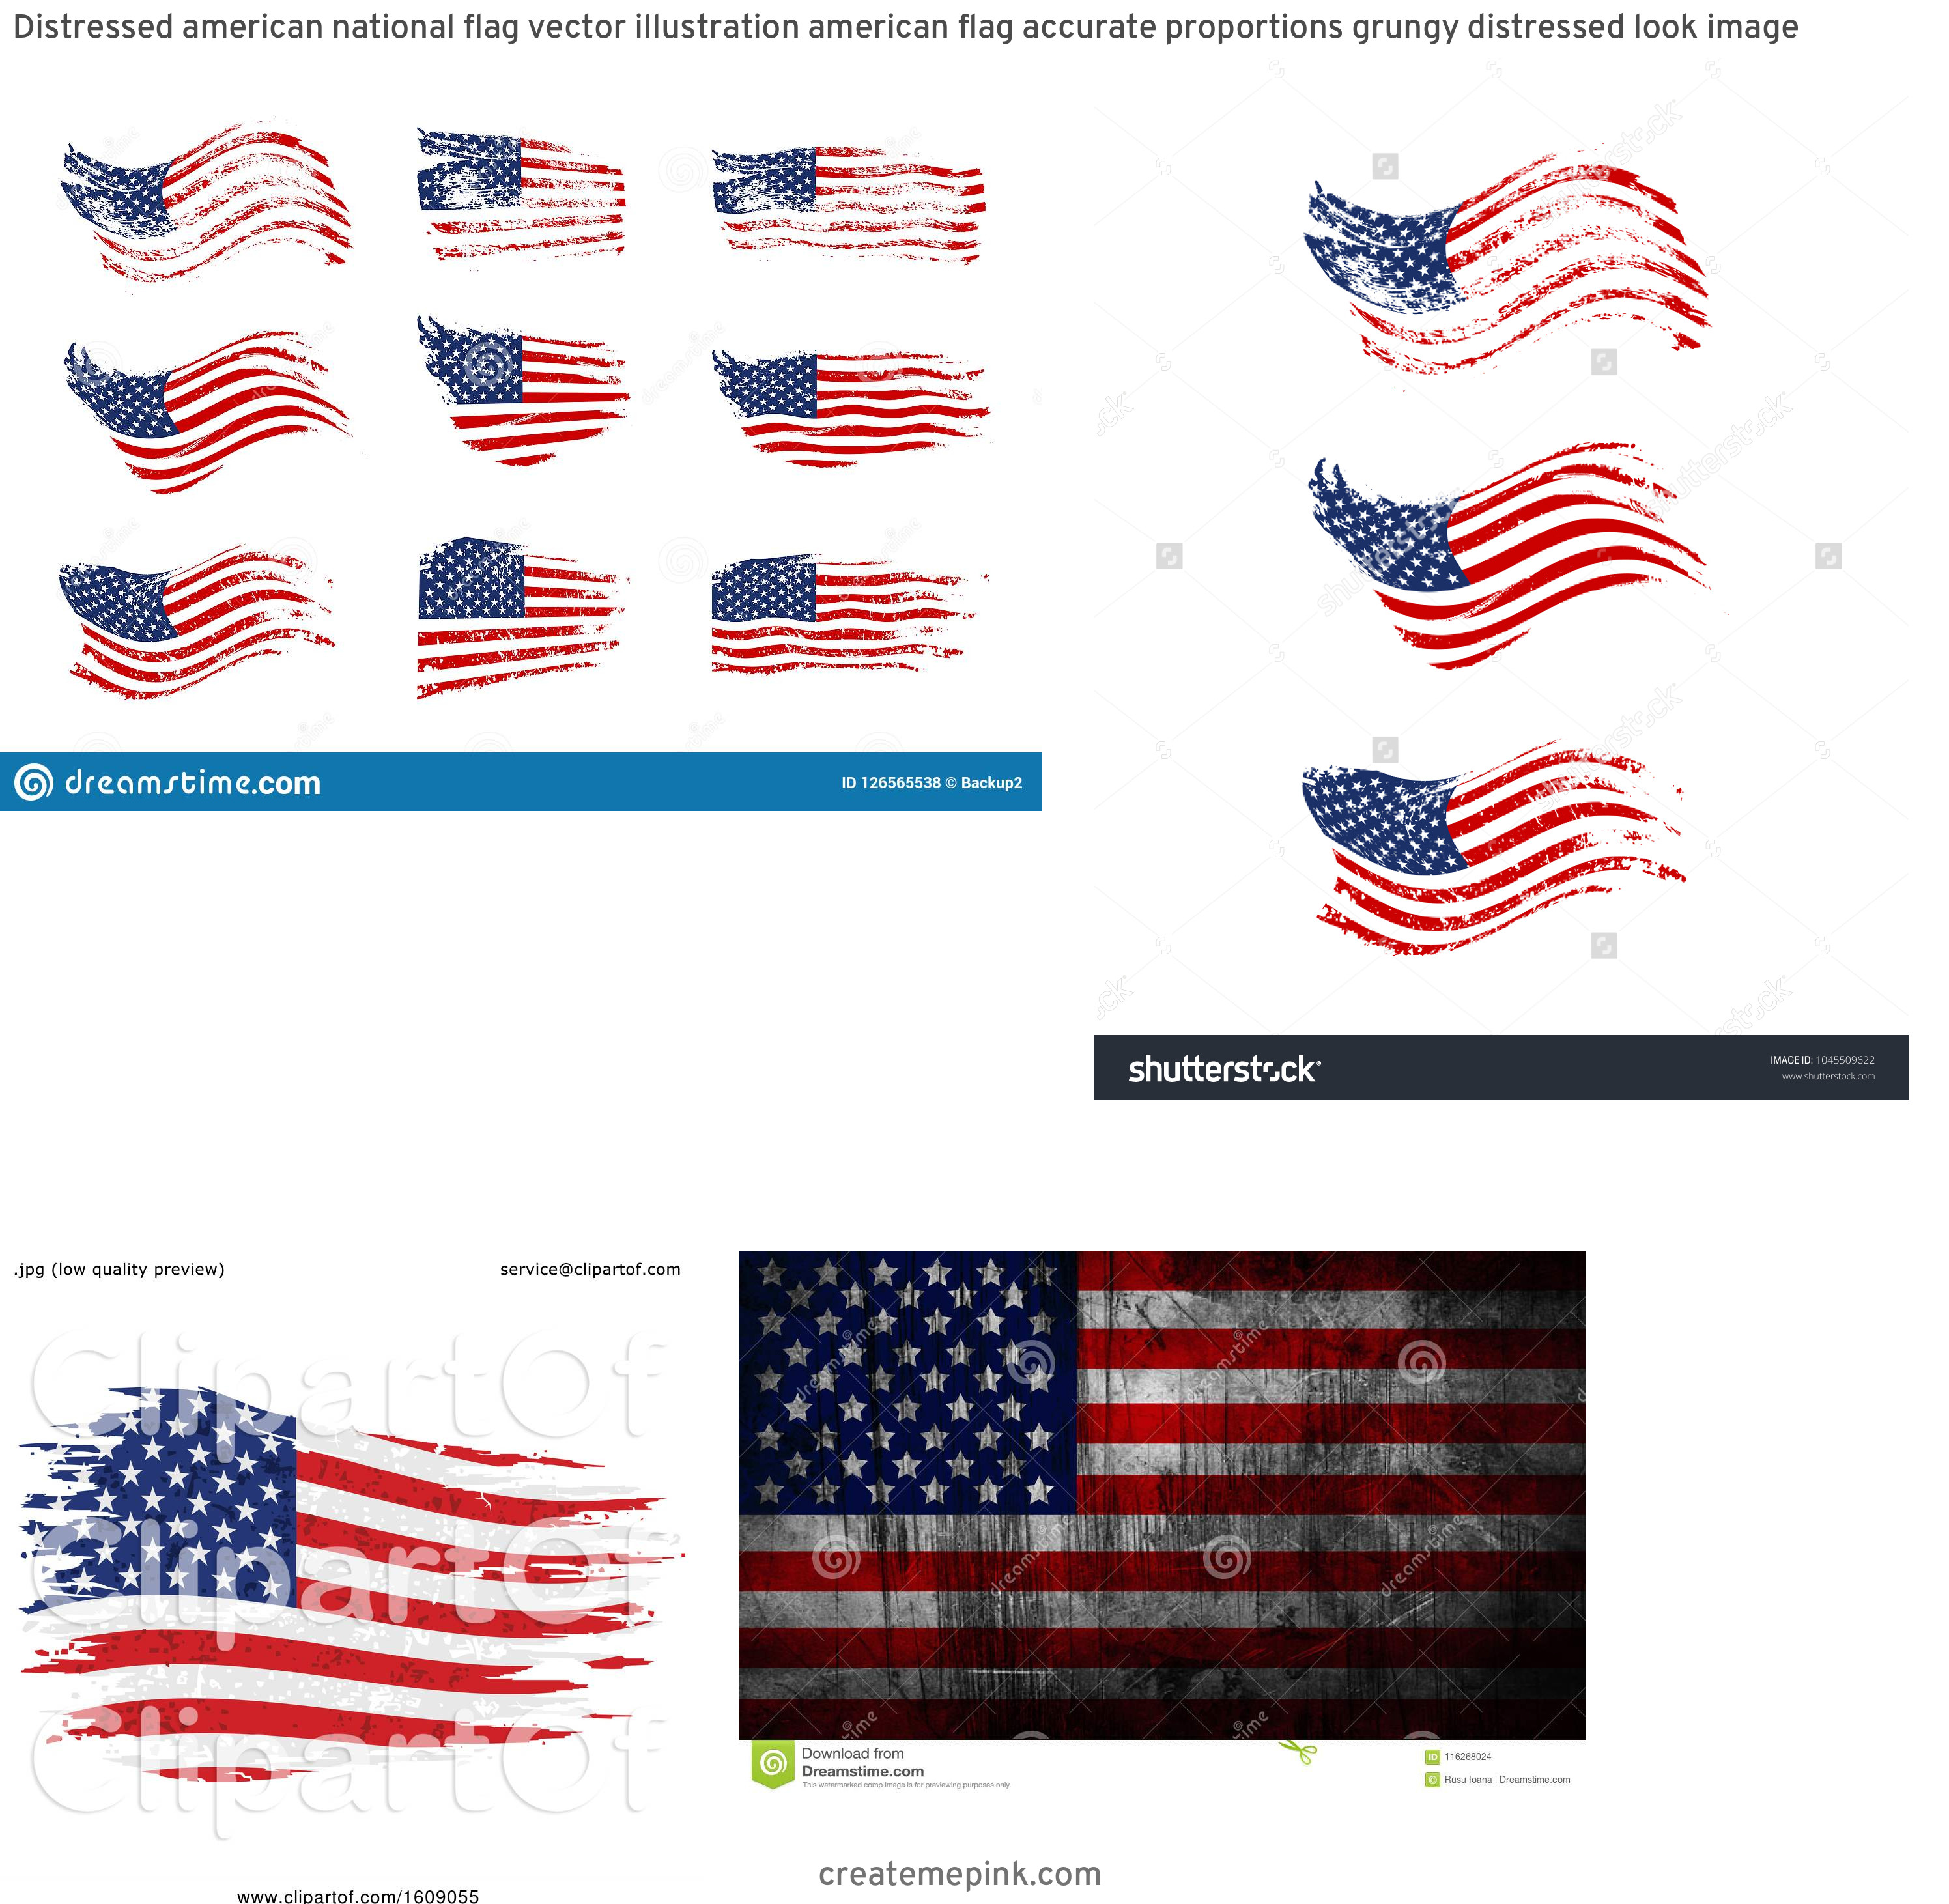 Waving Distressed Flag Vector: Distressed American National Flag Vector Illustration American Flag Accurate Proportions Grungy Distressed Look Image